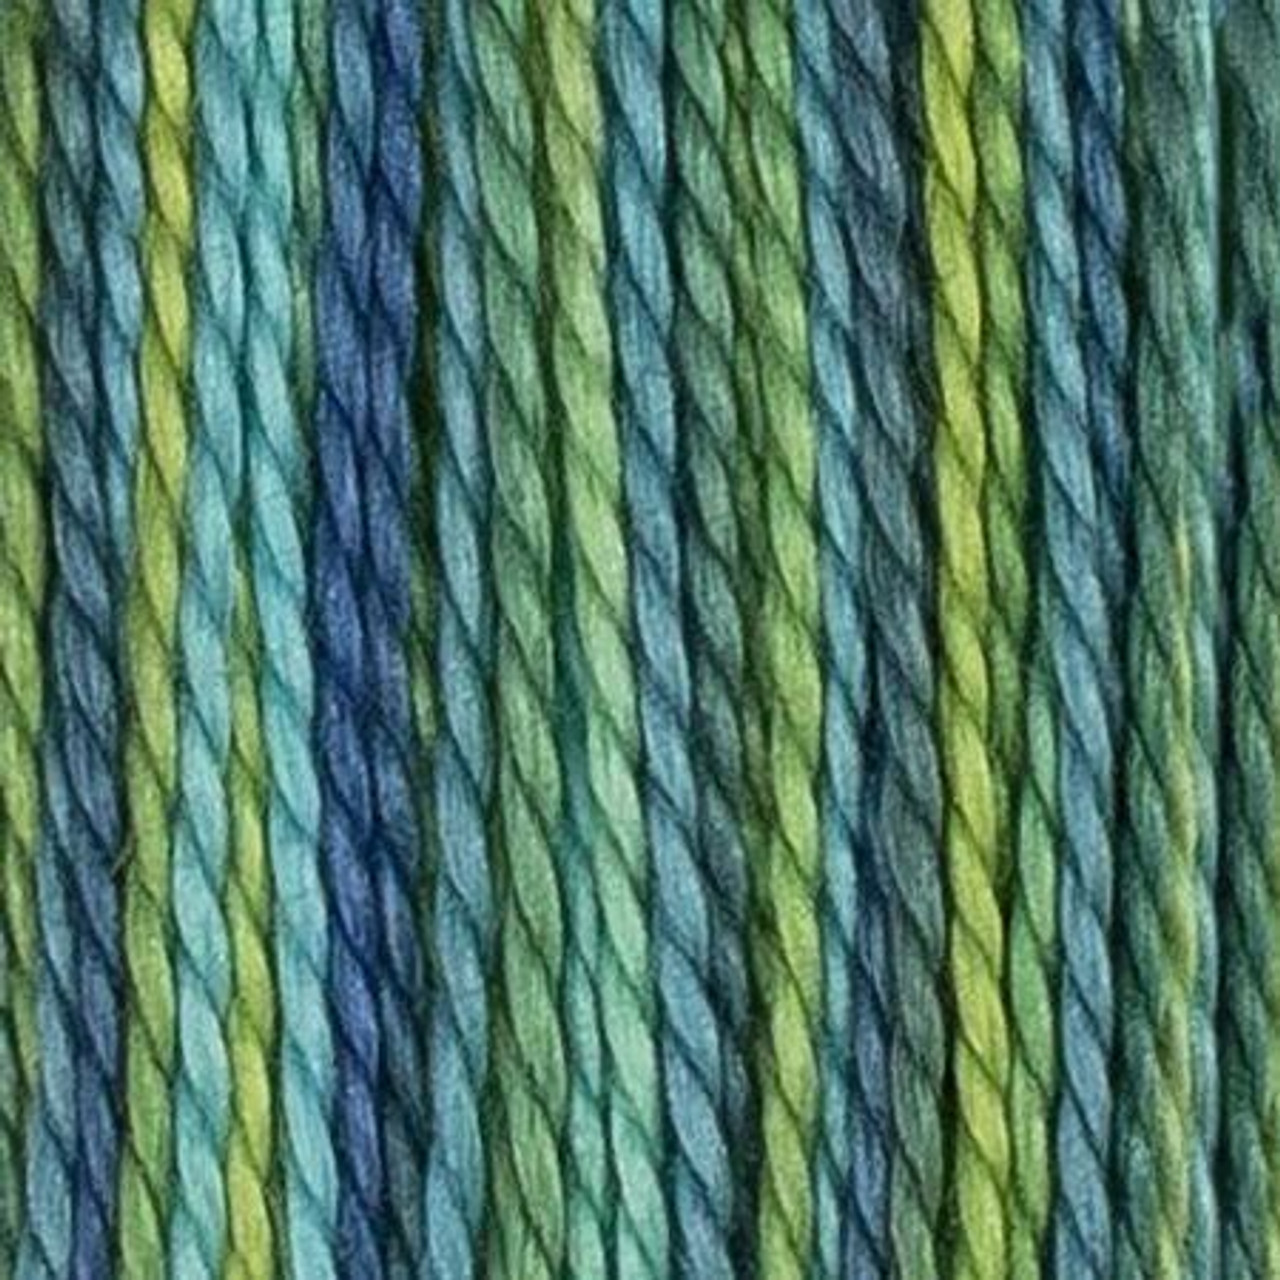 House of Embroidery : 8wt Perle Cotton - Aquatic (28B)